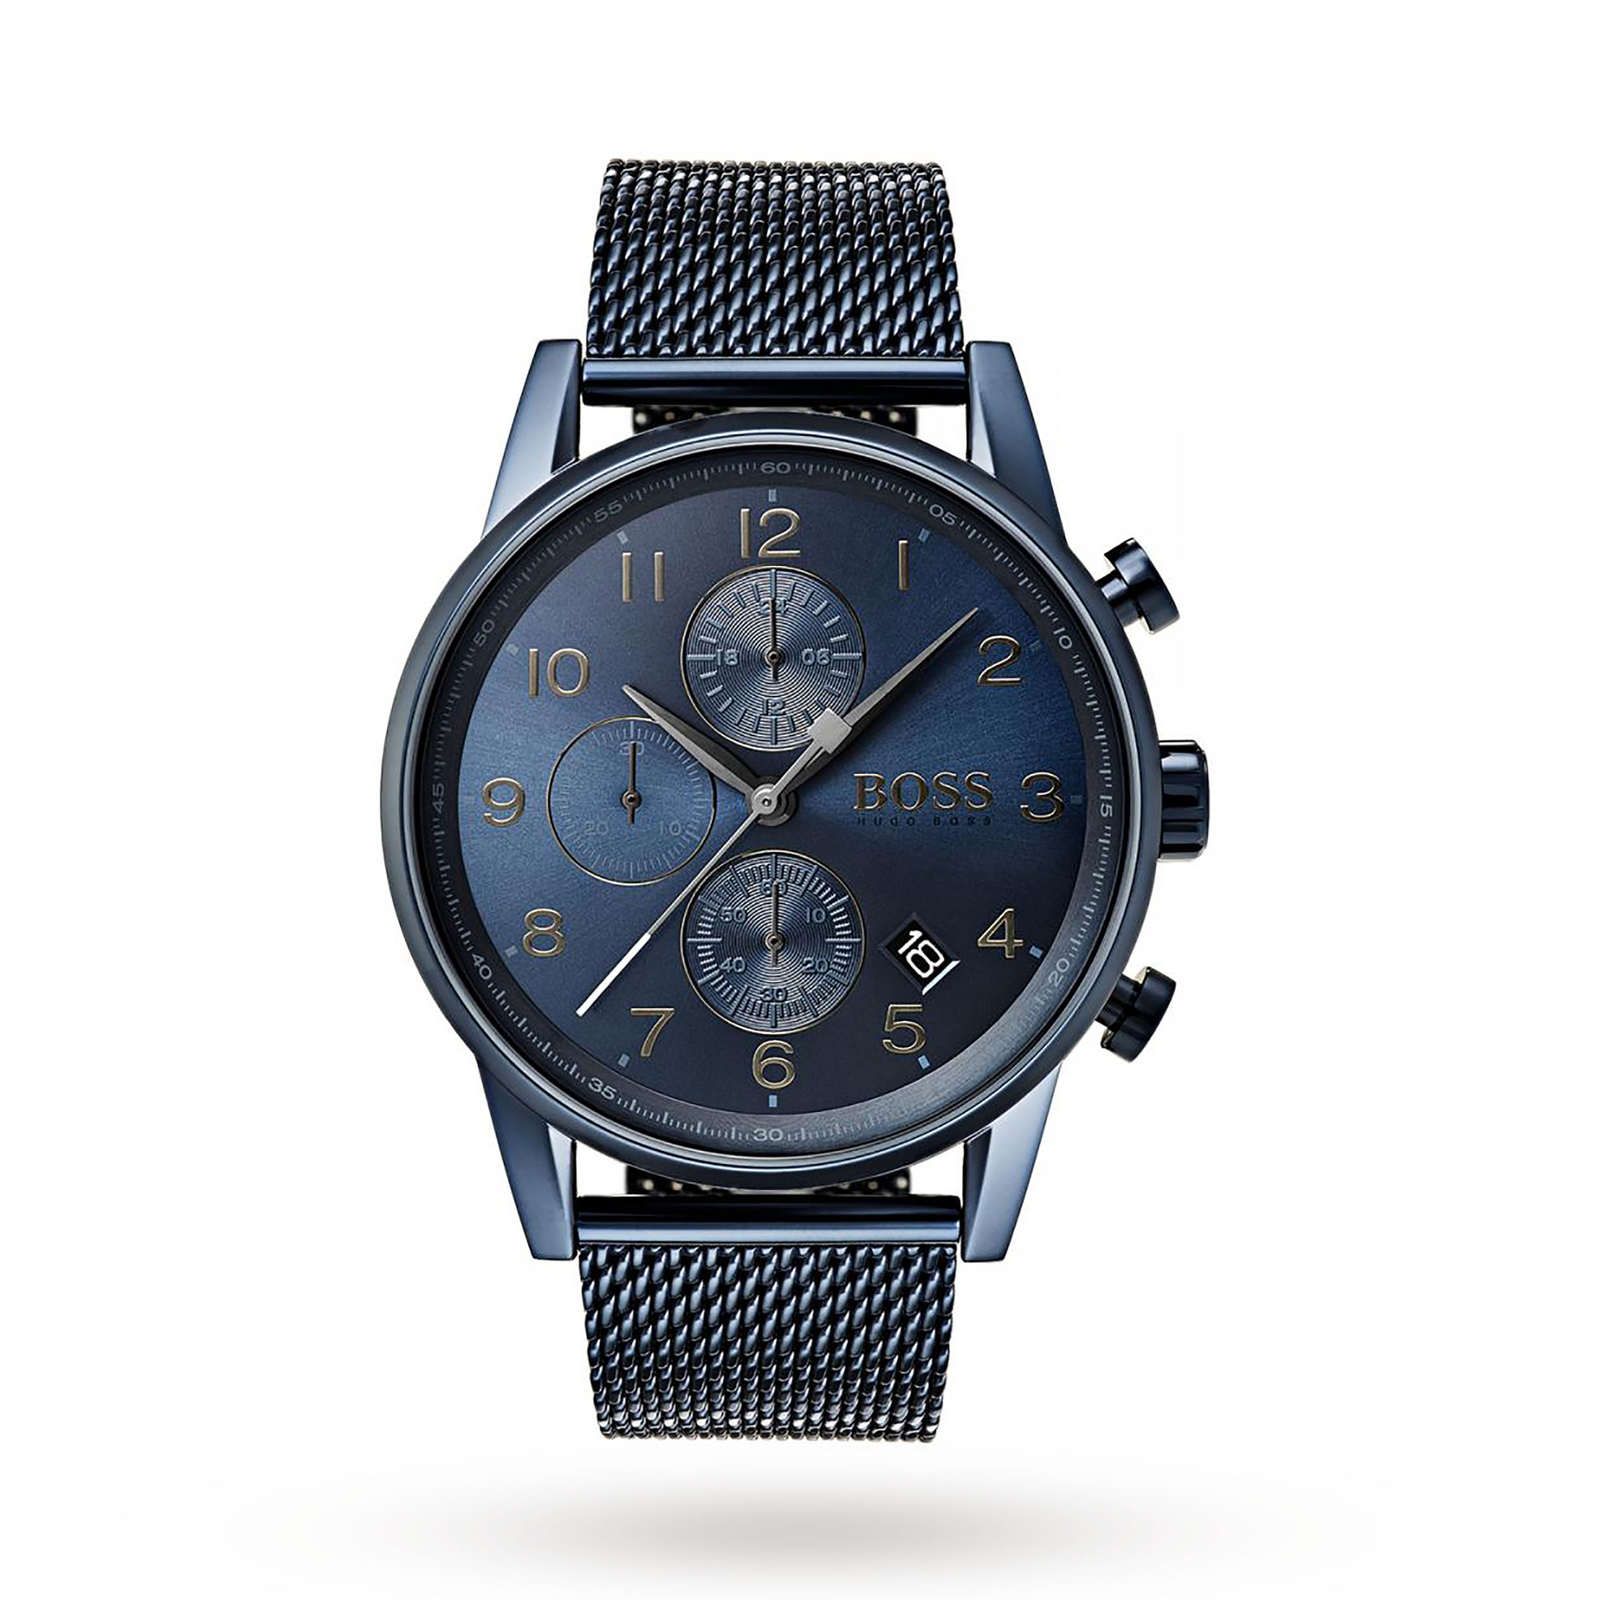 beautifully watch watches and designed playboy pin rate a mens sporting see mvmt statement makes why gq